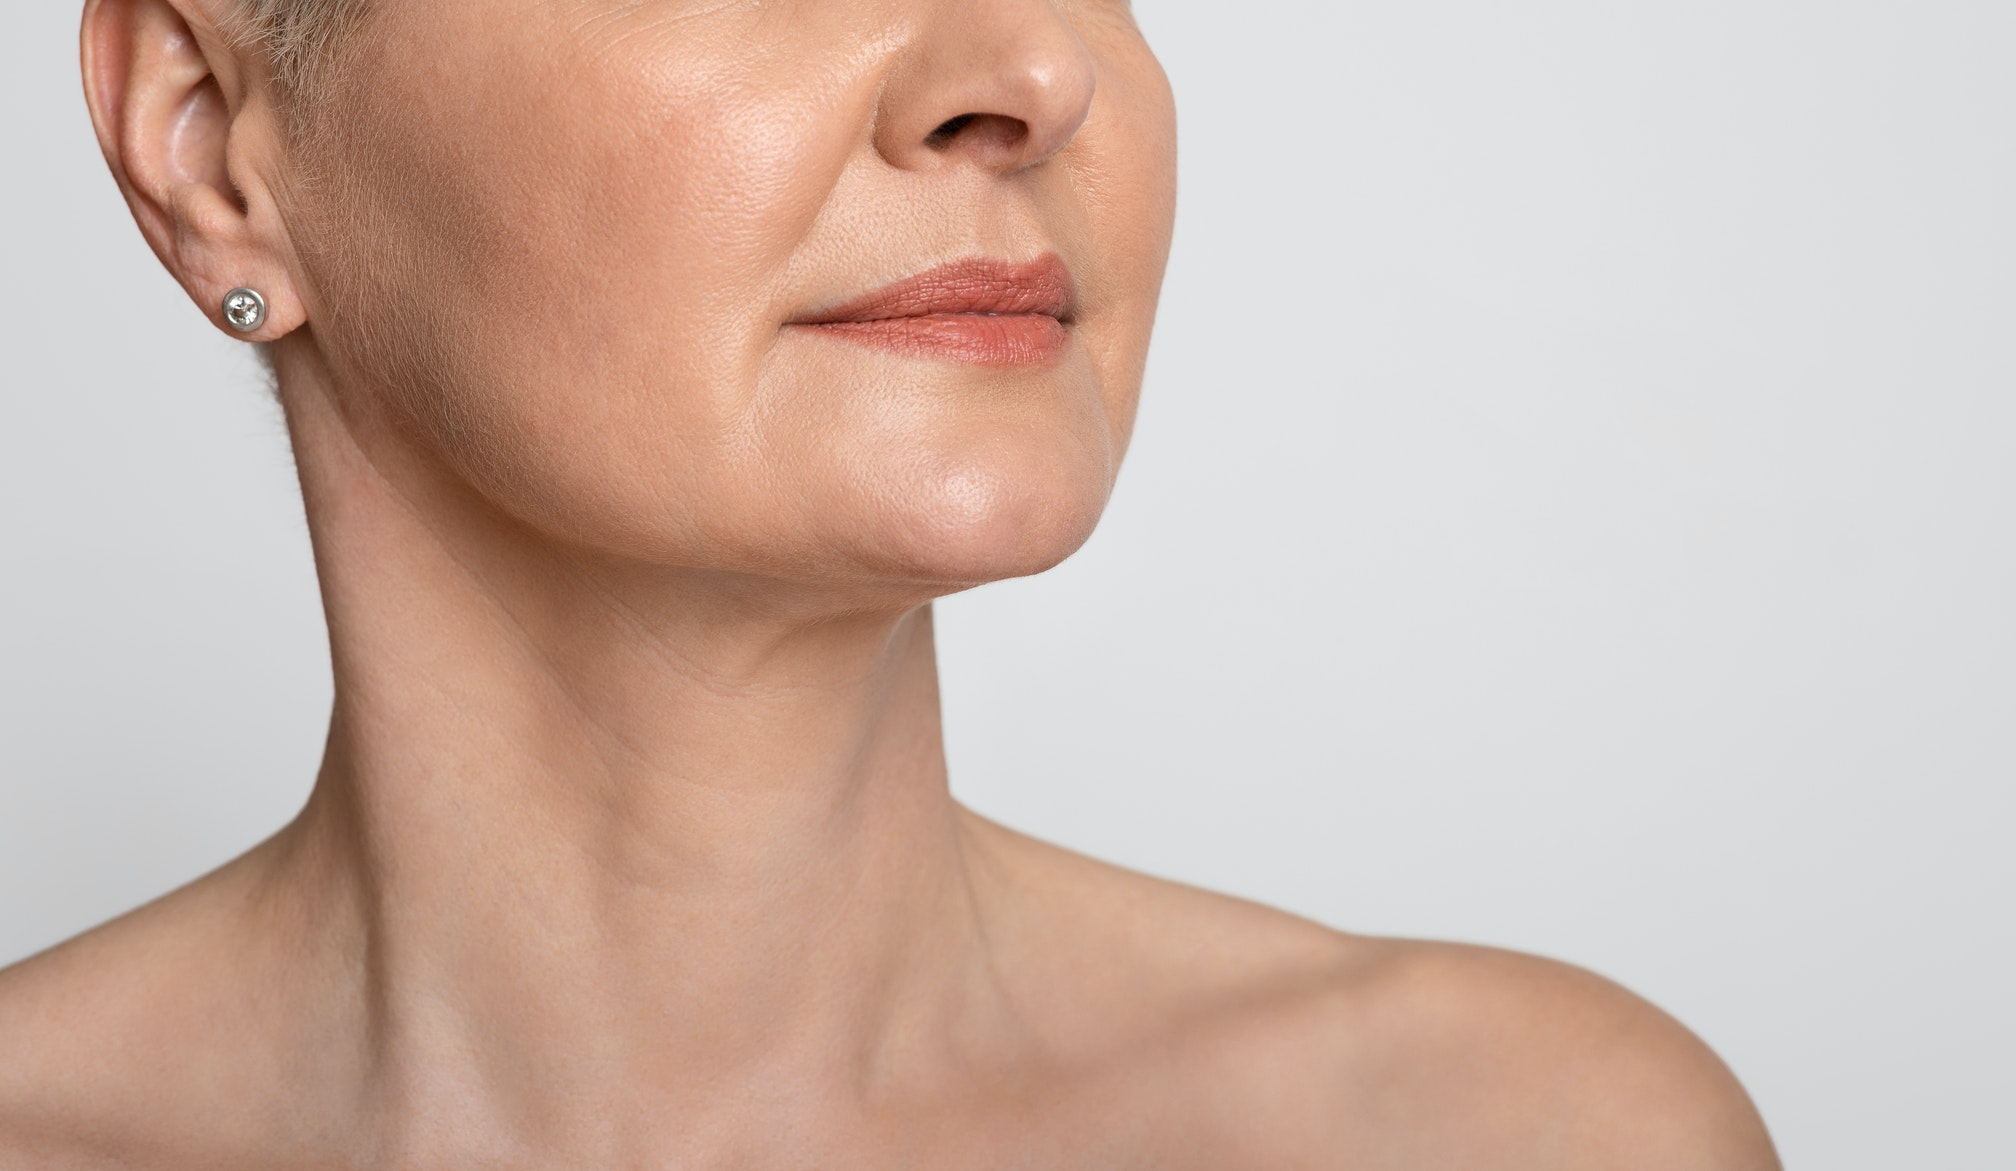 Neck Lift Scars: What to Know About Recovery, Plus a Less Invasive Treatment